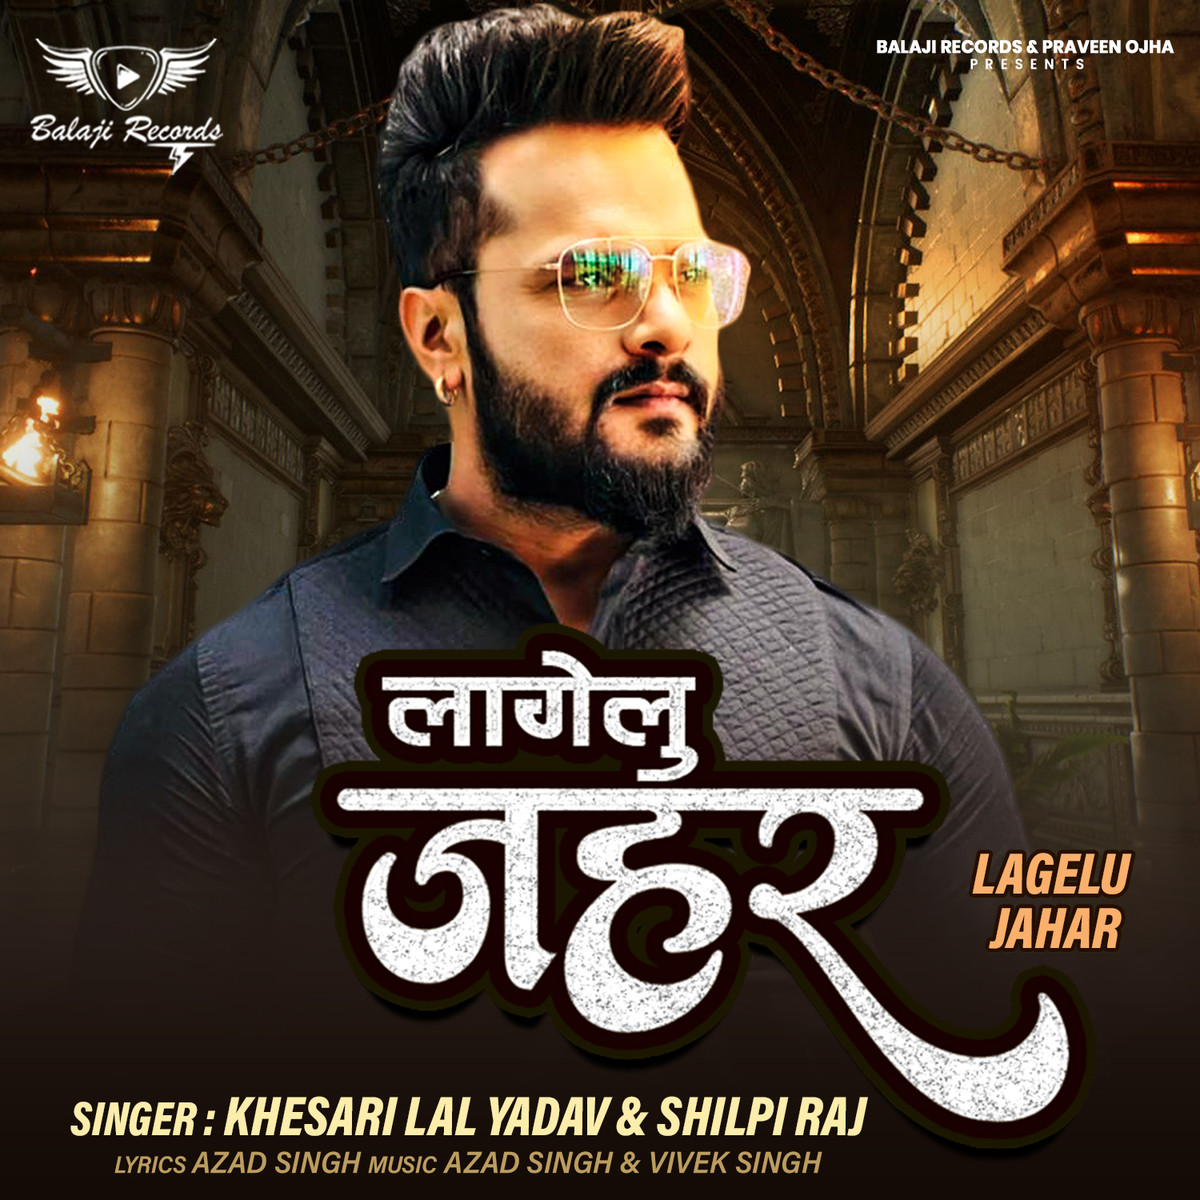 You are currently viewing Lagelu Jahar by kesari lal